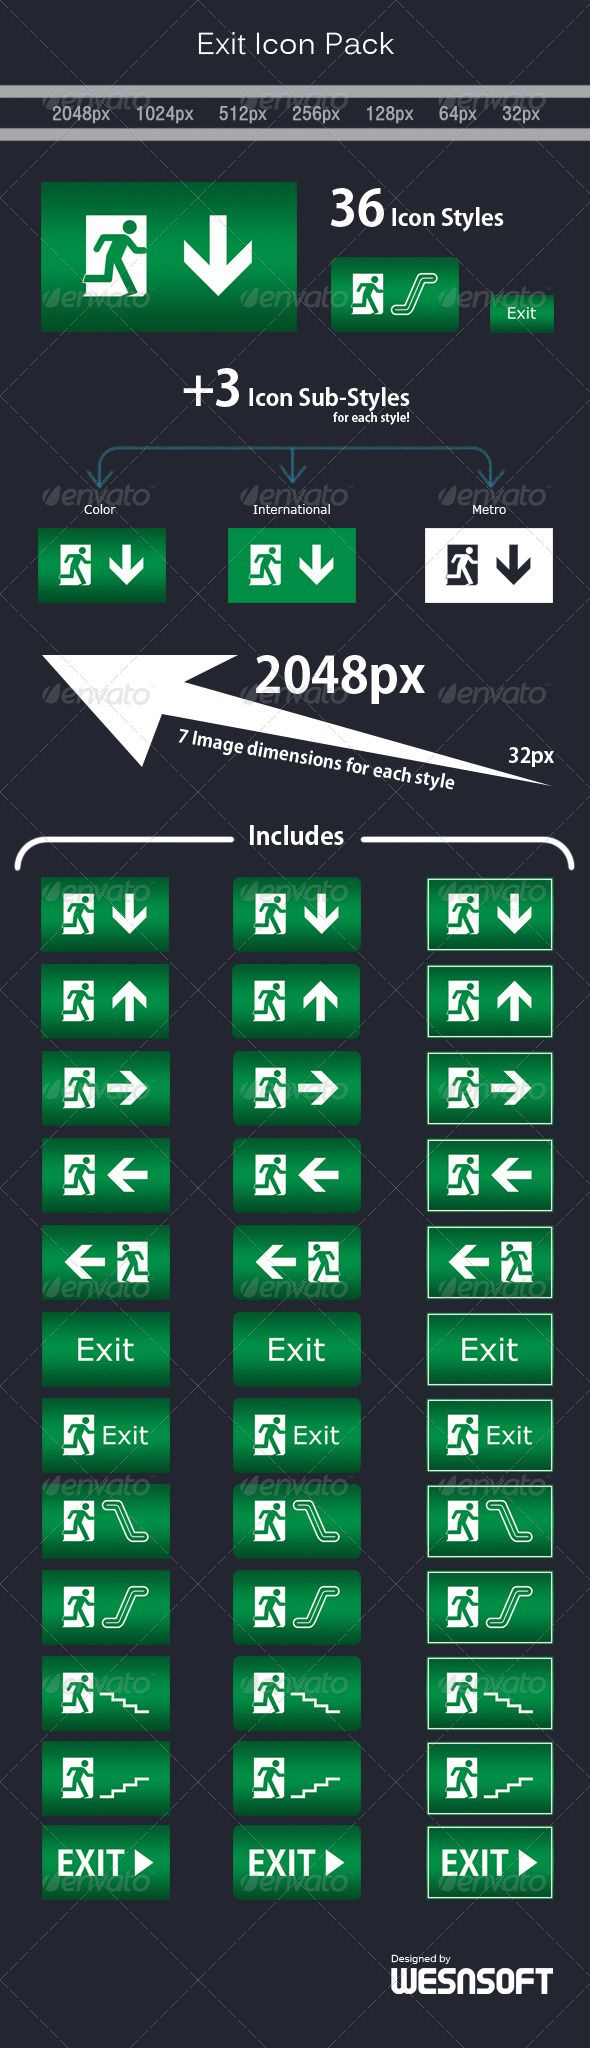 Exit Icon Pack by wesnsoft Exit Icon Pack is a collection of well-known exit icons (signs) with different styles to show the exit. Features:  36 Icon styl